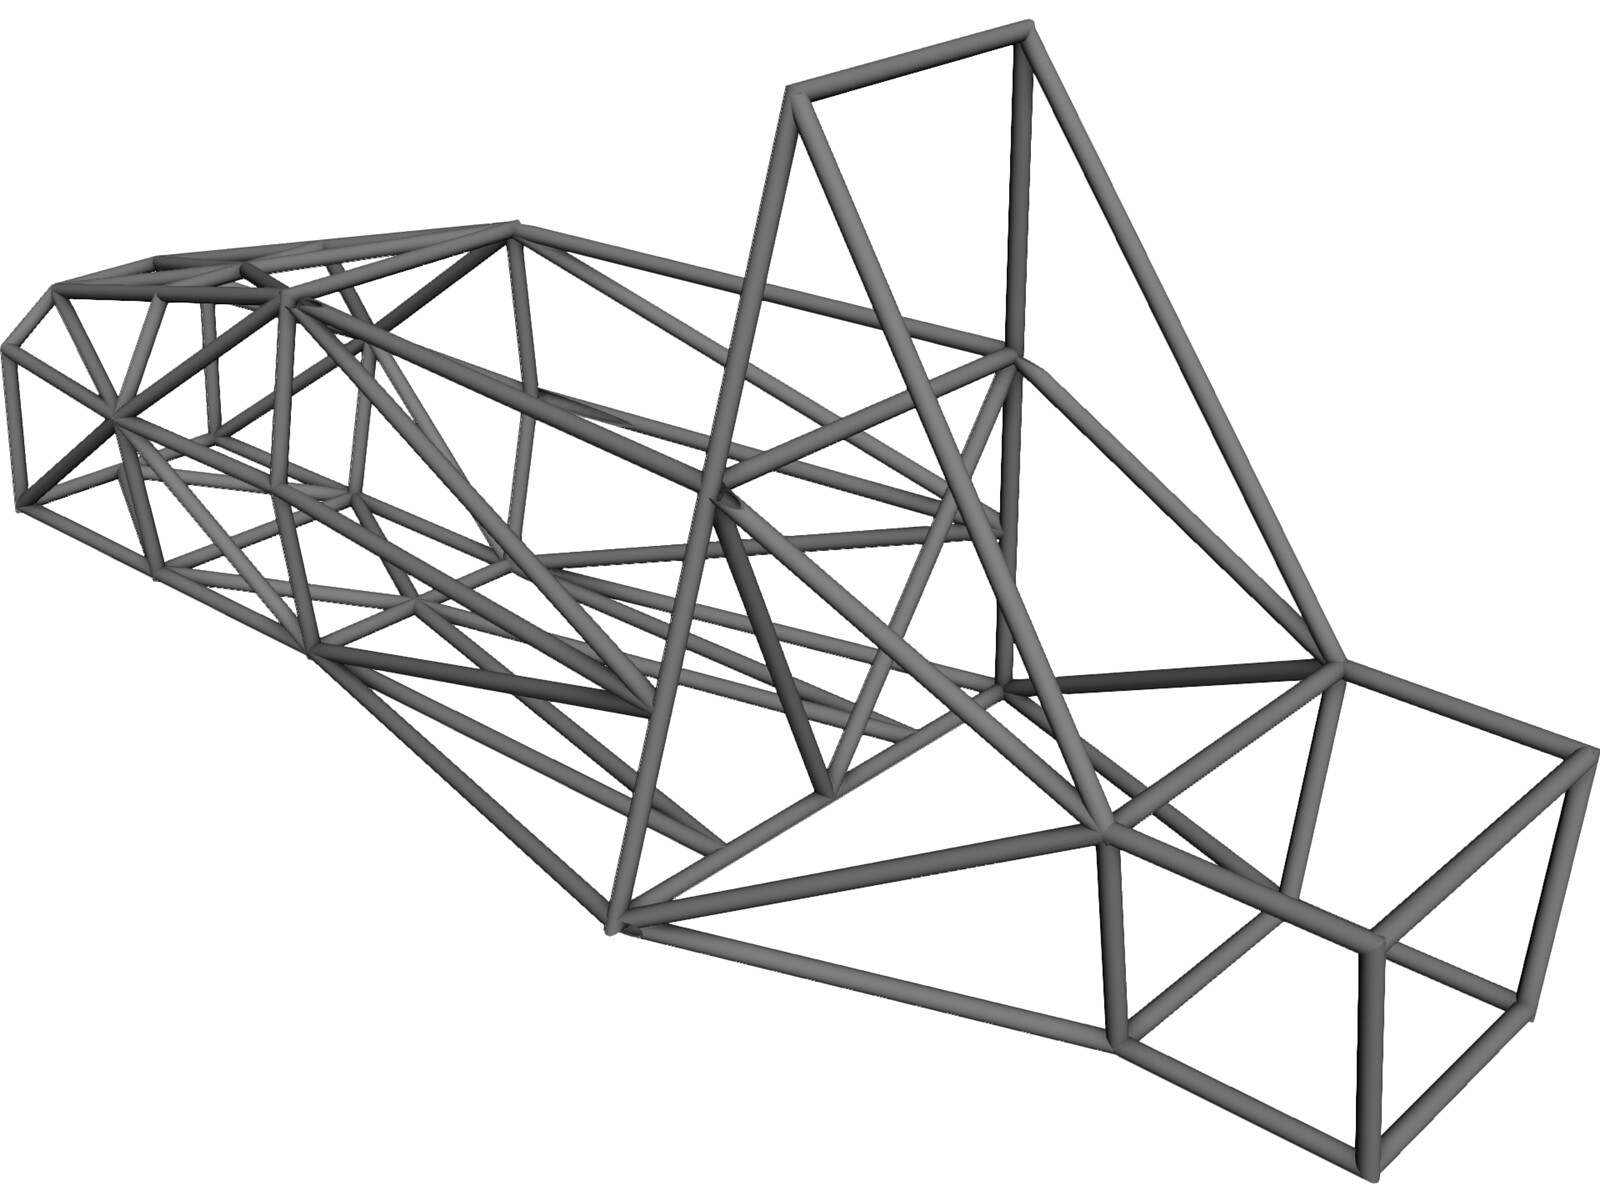 FSAE Frame 3D CAD Model - 3D CAD Browser